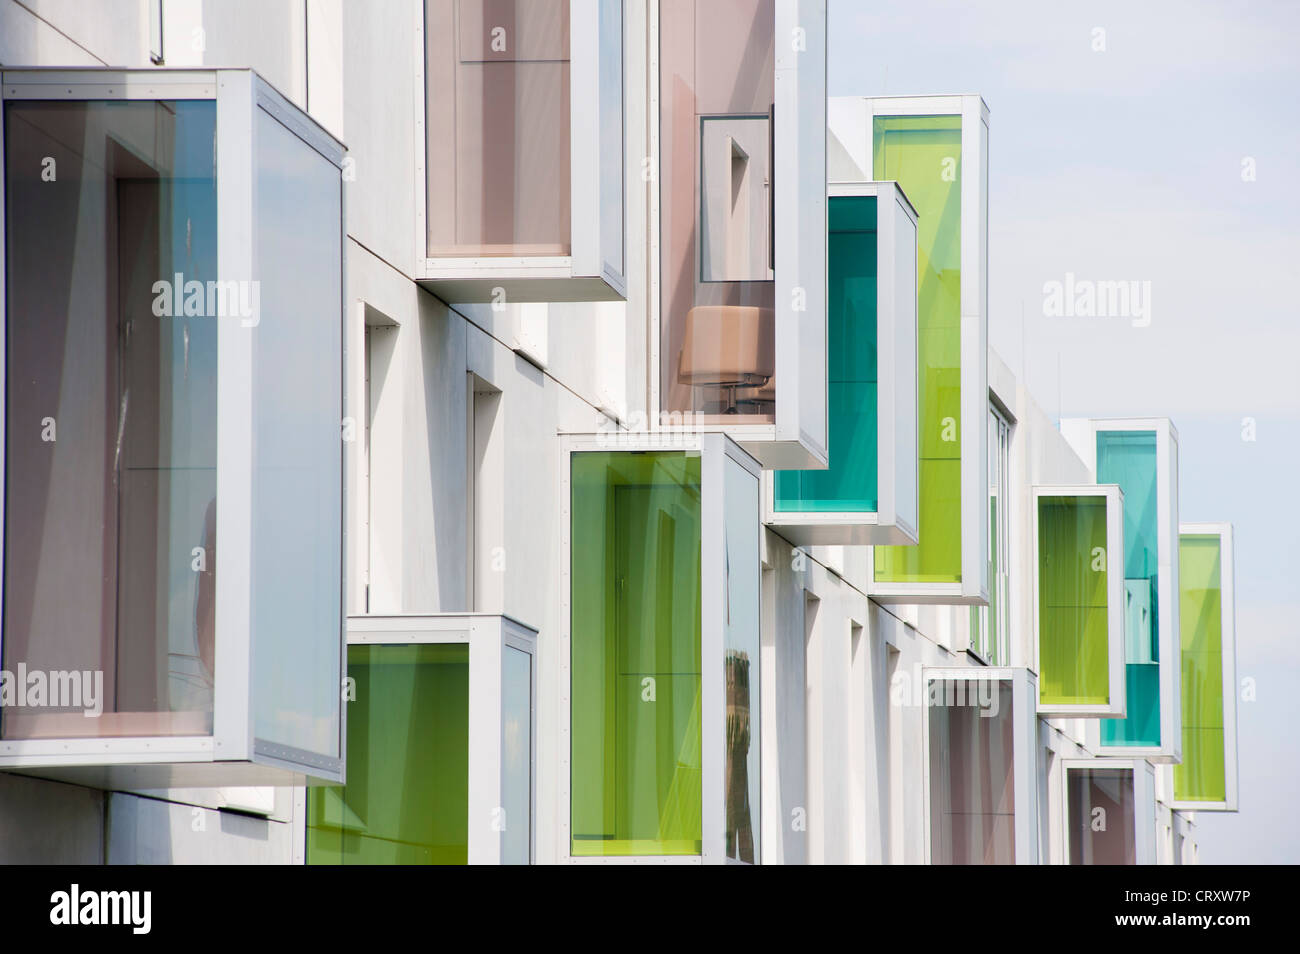 Exterior of modern Art'Otel with unusual architecture in Rheinauhafen district Cologne Germany - Stock Image